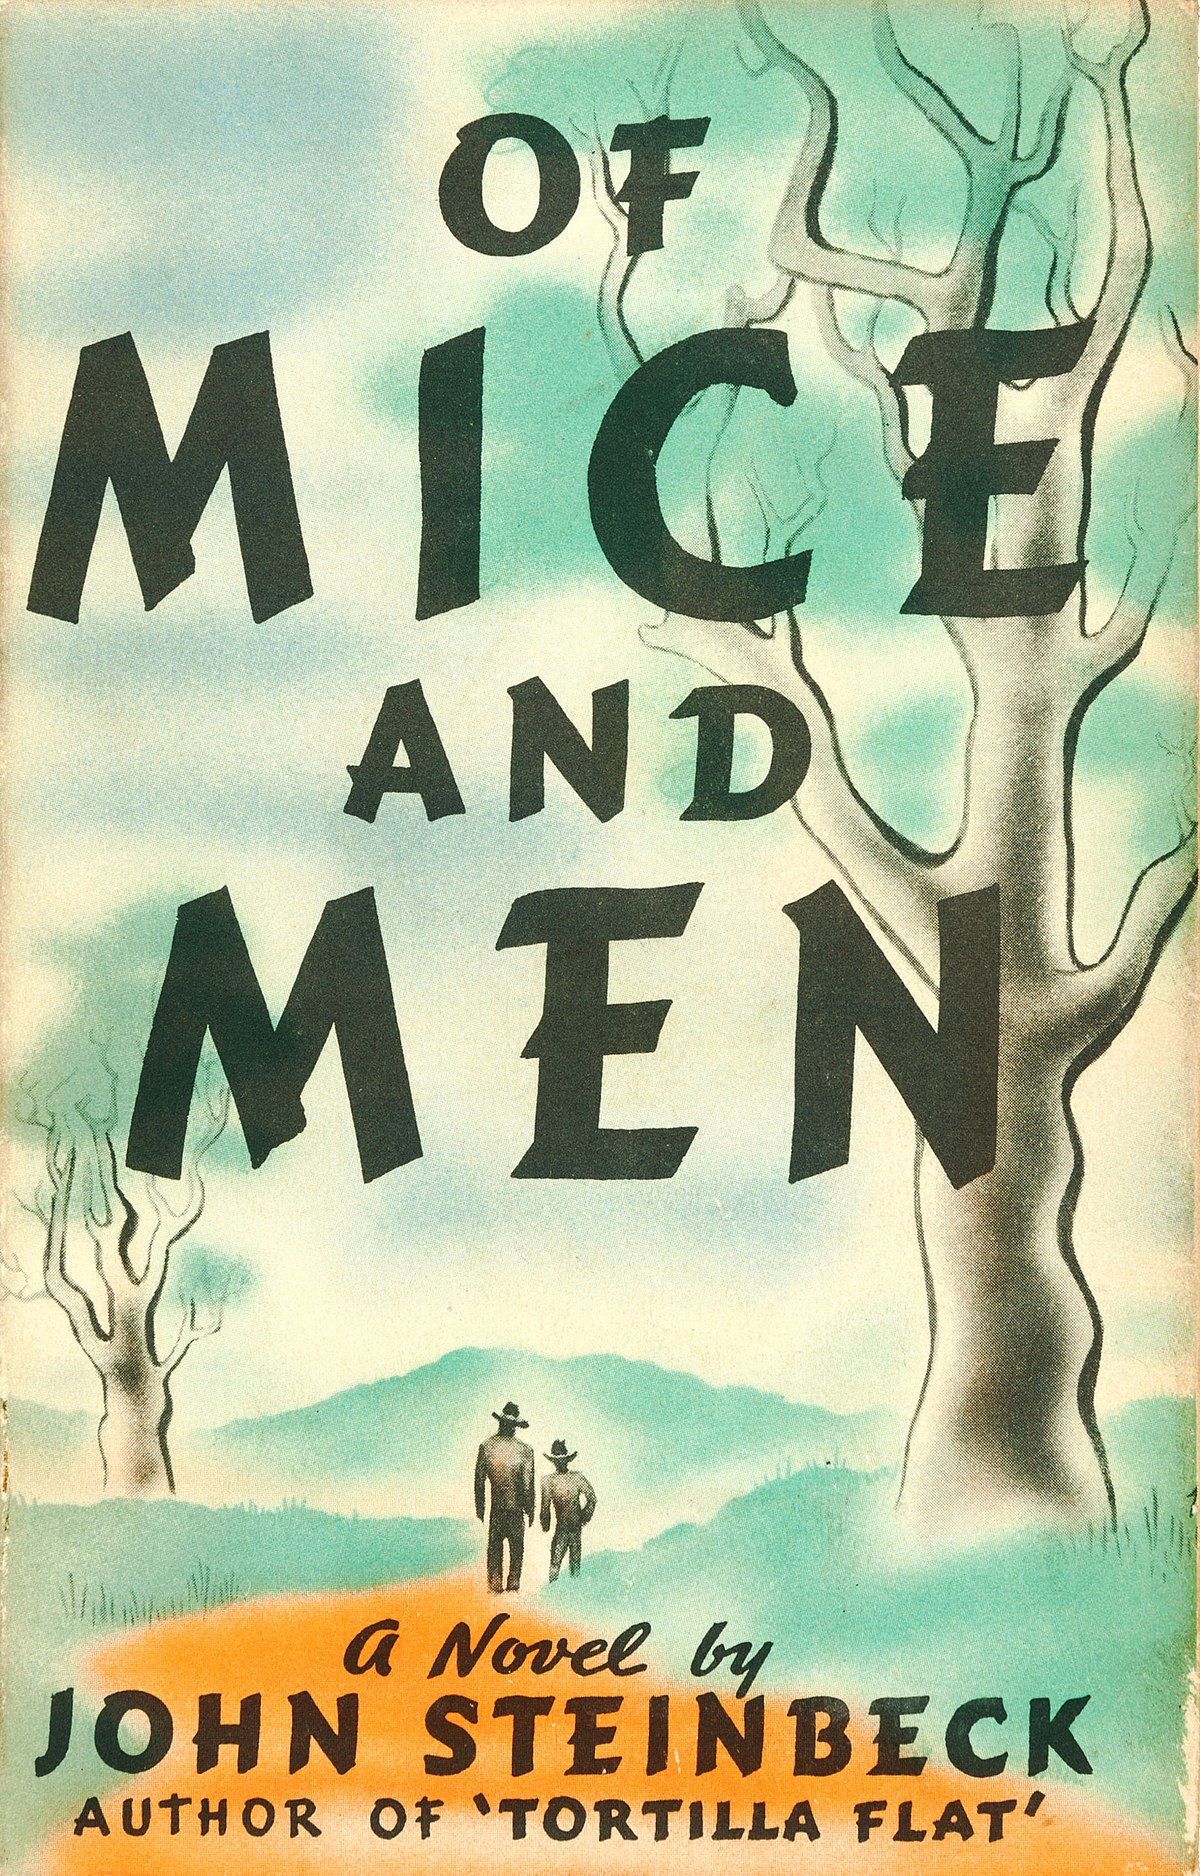 Books in small towns - Of Mice and Men